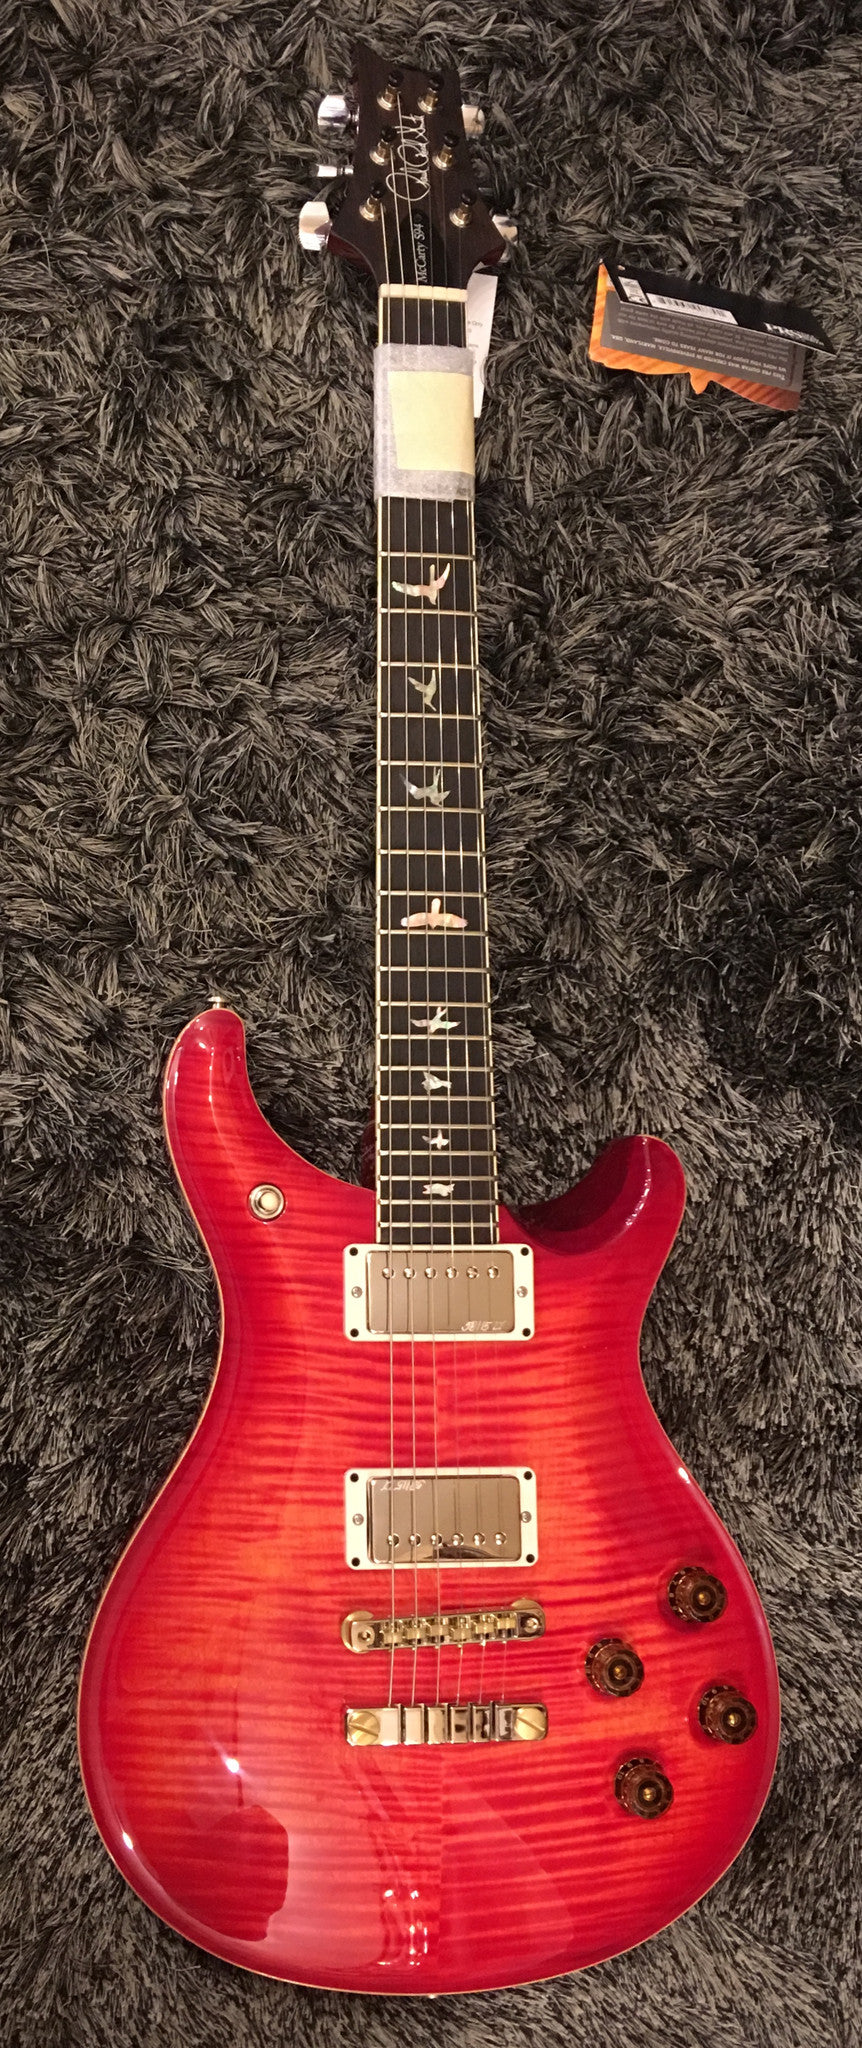 PRS McCarty 594 blood orange 10top HIENDGUITAR.COM - HIENDGUITAR.COM